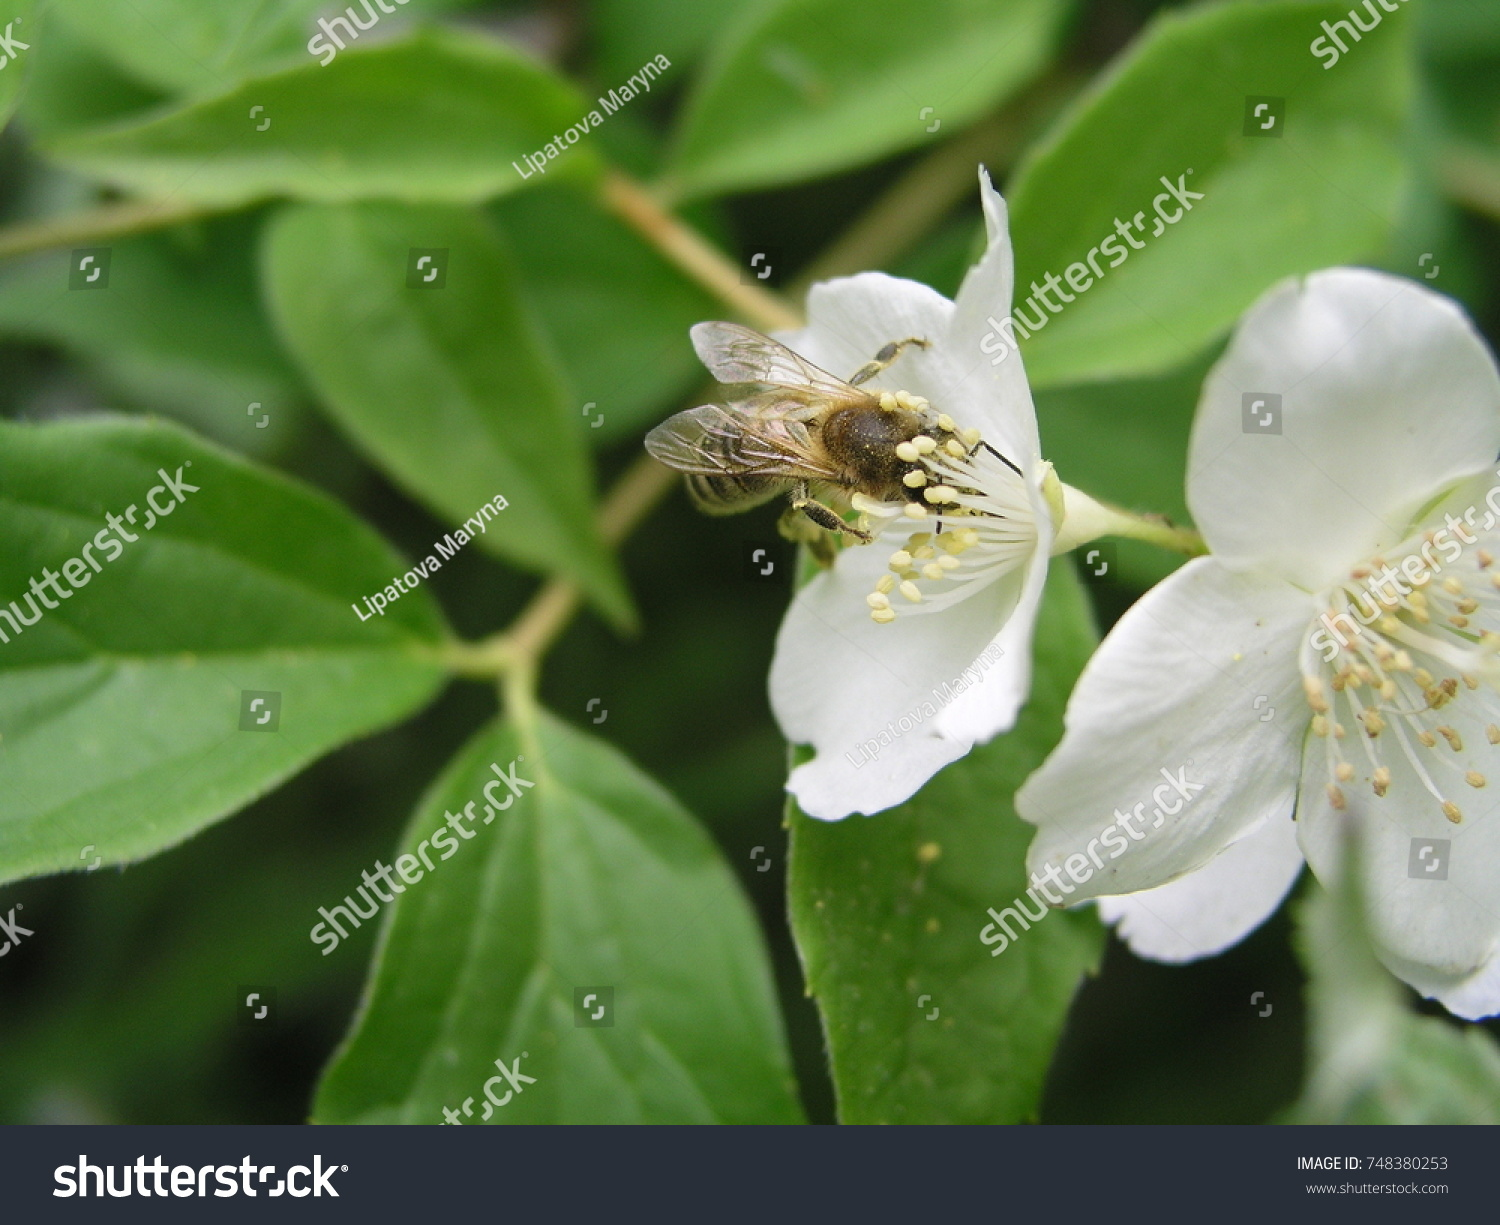 Jasmine yasmine is a genus of shrubs and vineyards in an olive id 748380253 izmirmasajfo